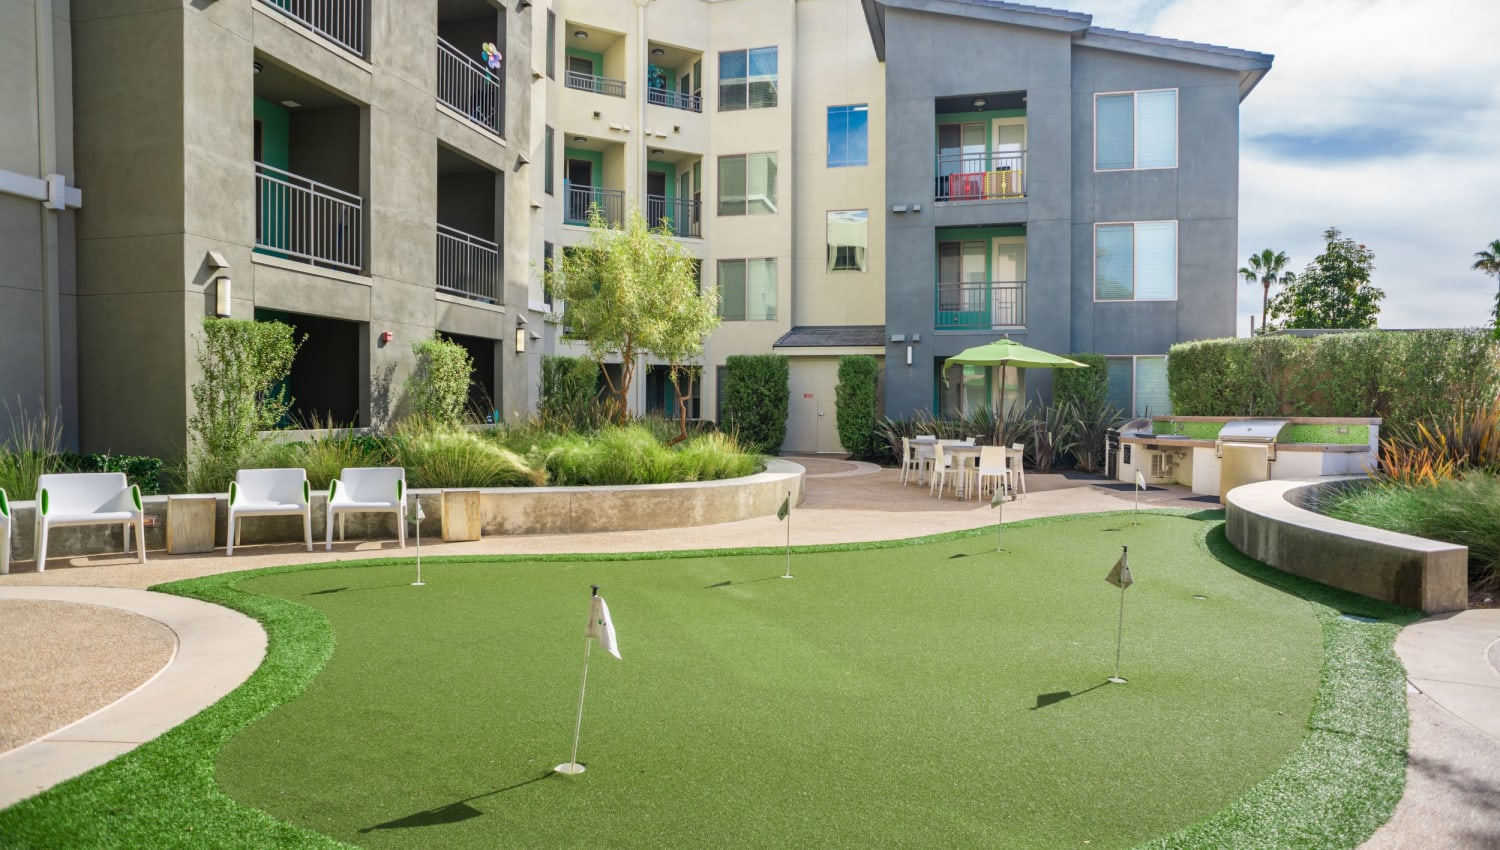 Mini putting green at Olympus Corsair in San Diego, California